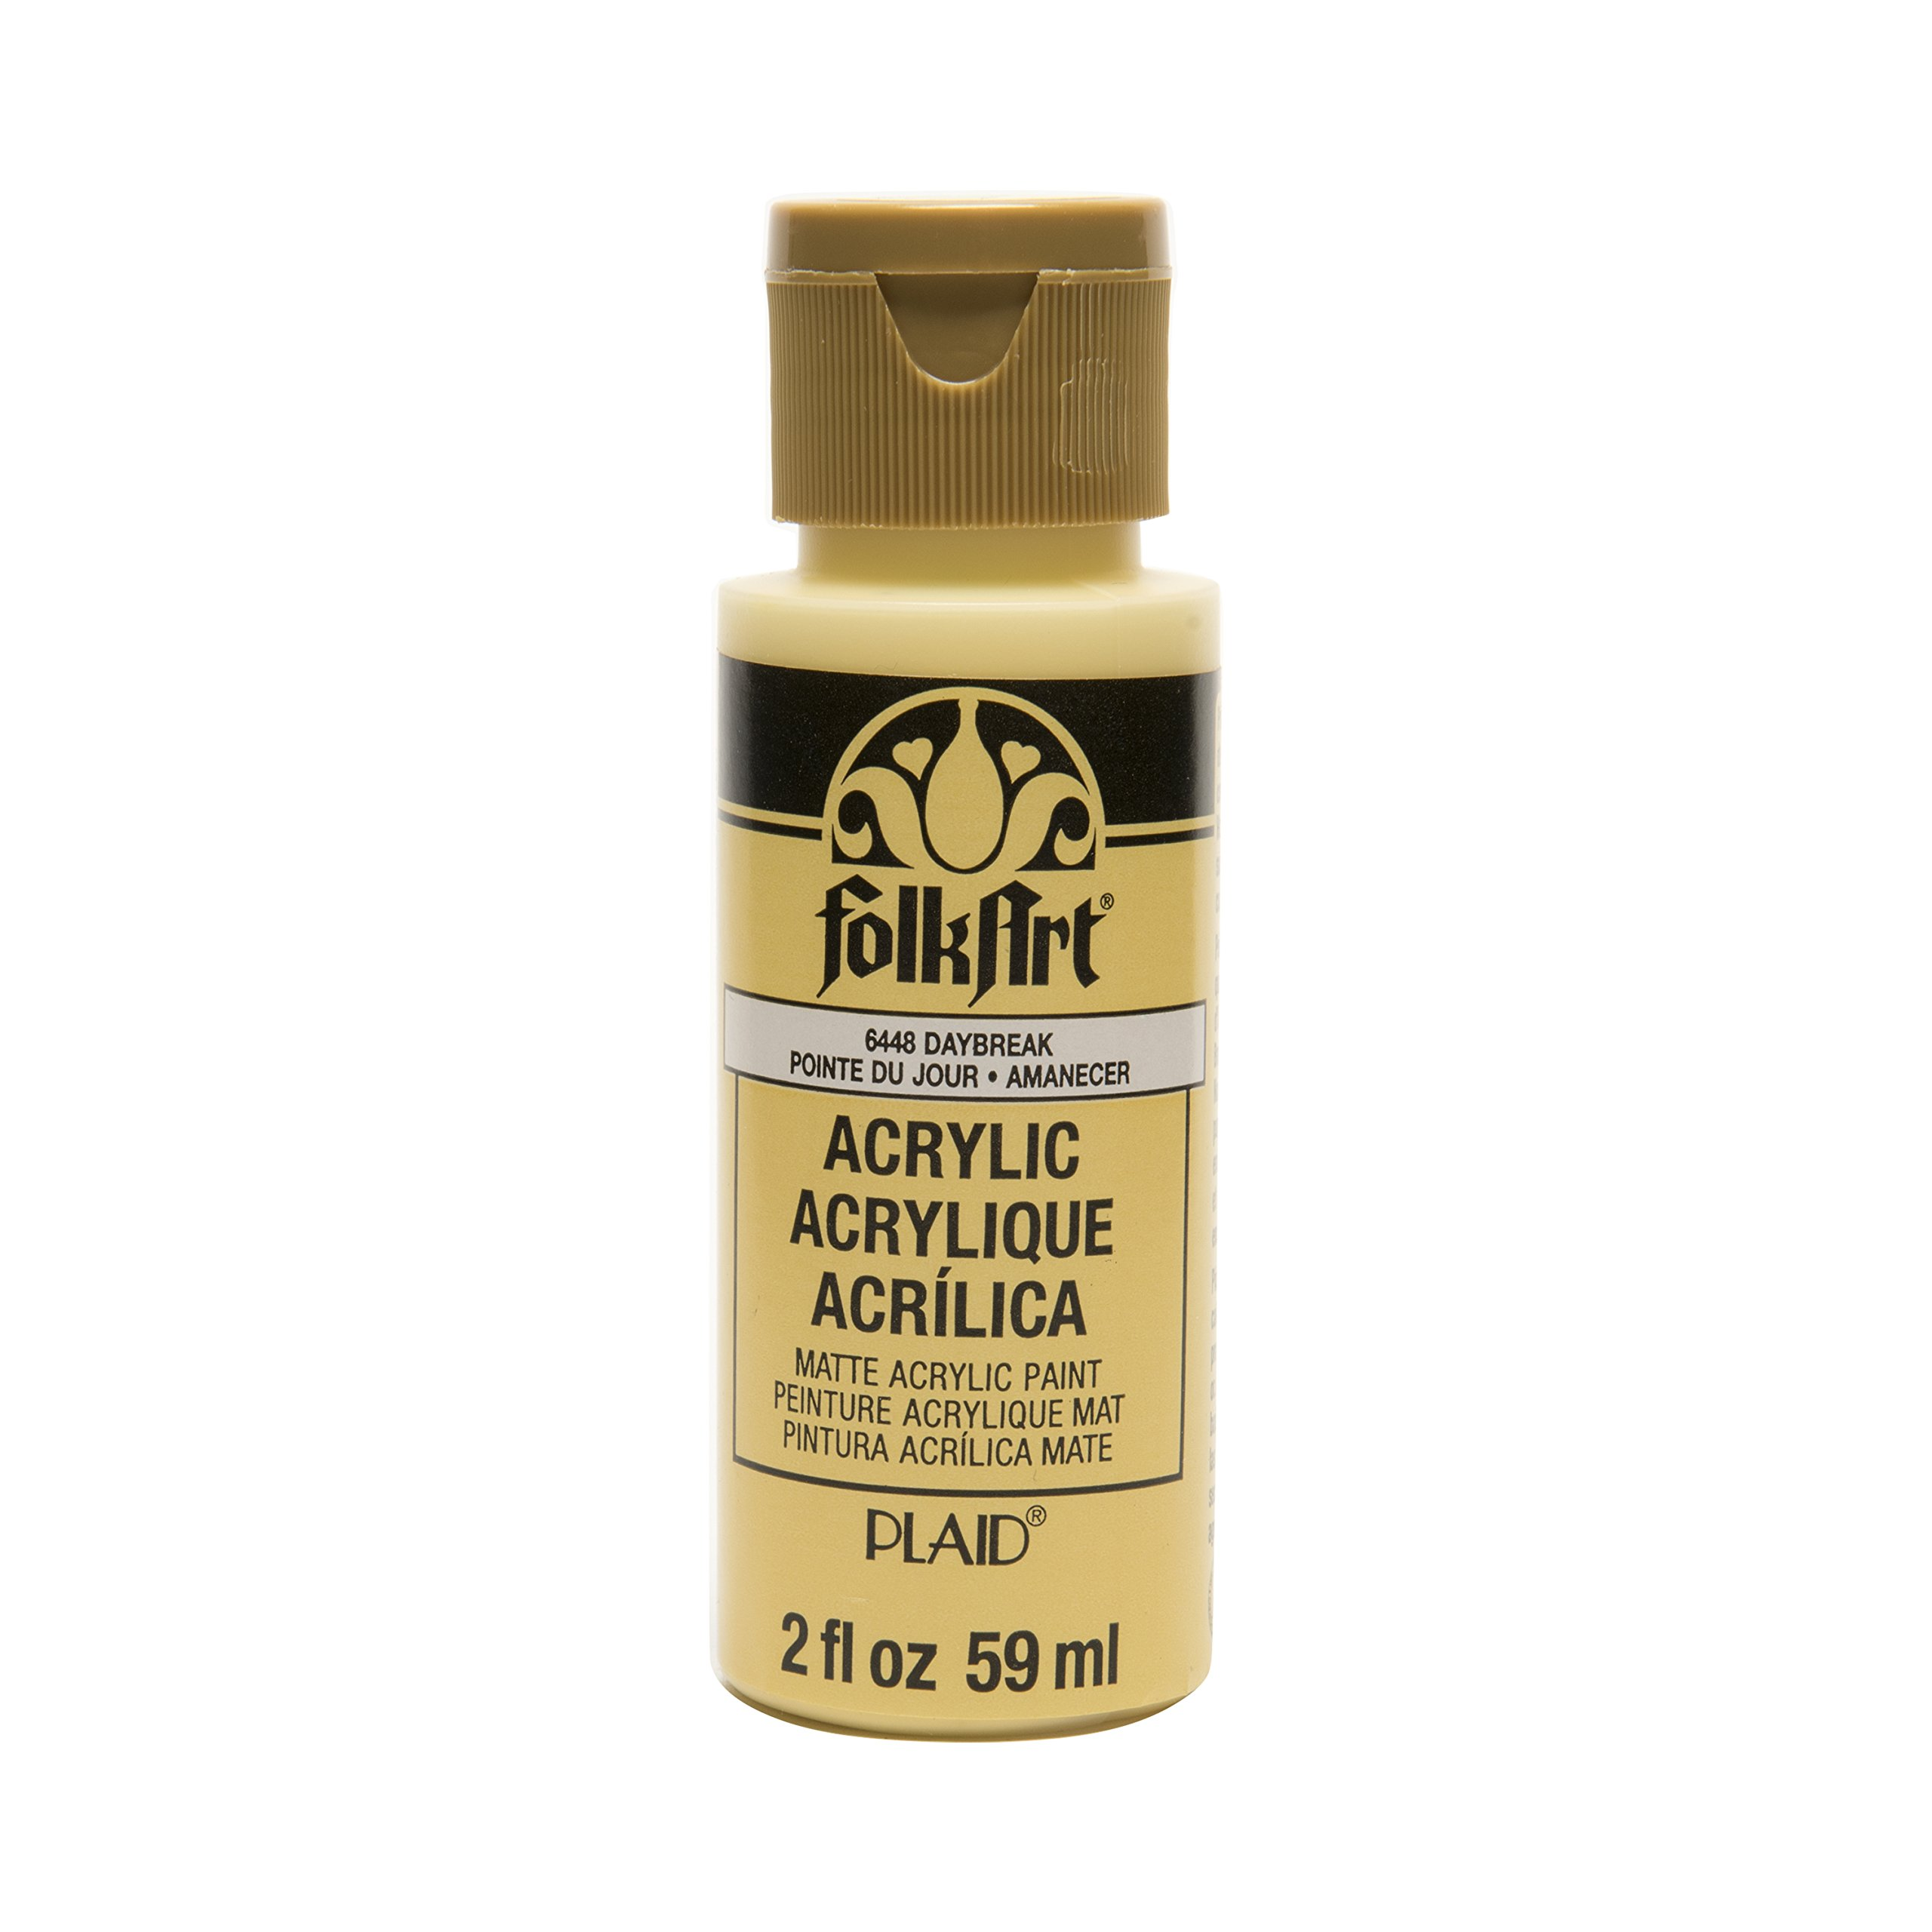 FolkArt Acrylic Paint in Assorted Colors (2 oz), 6448, Daybreak